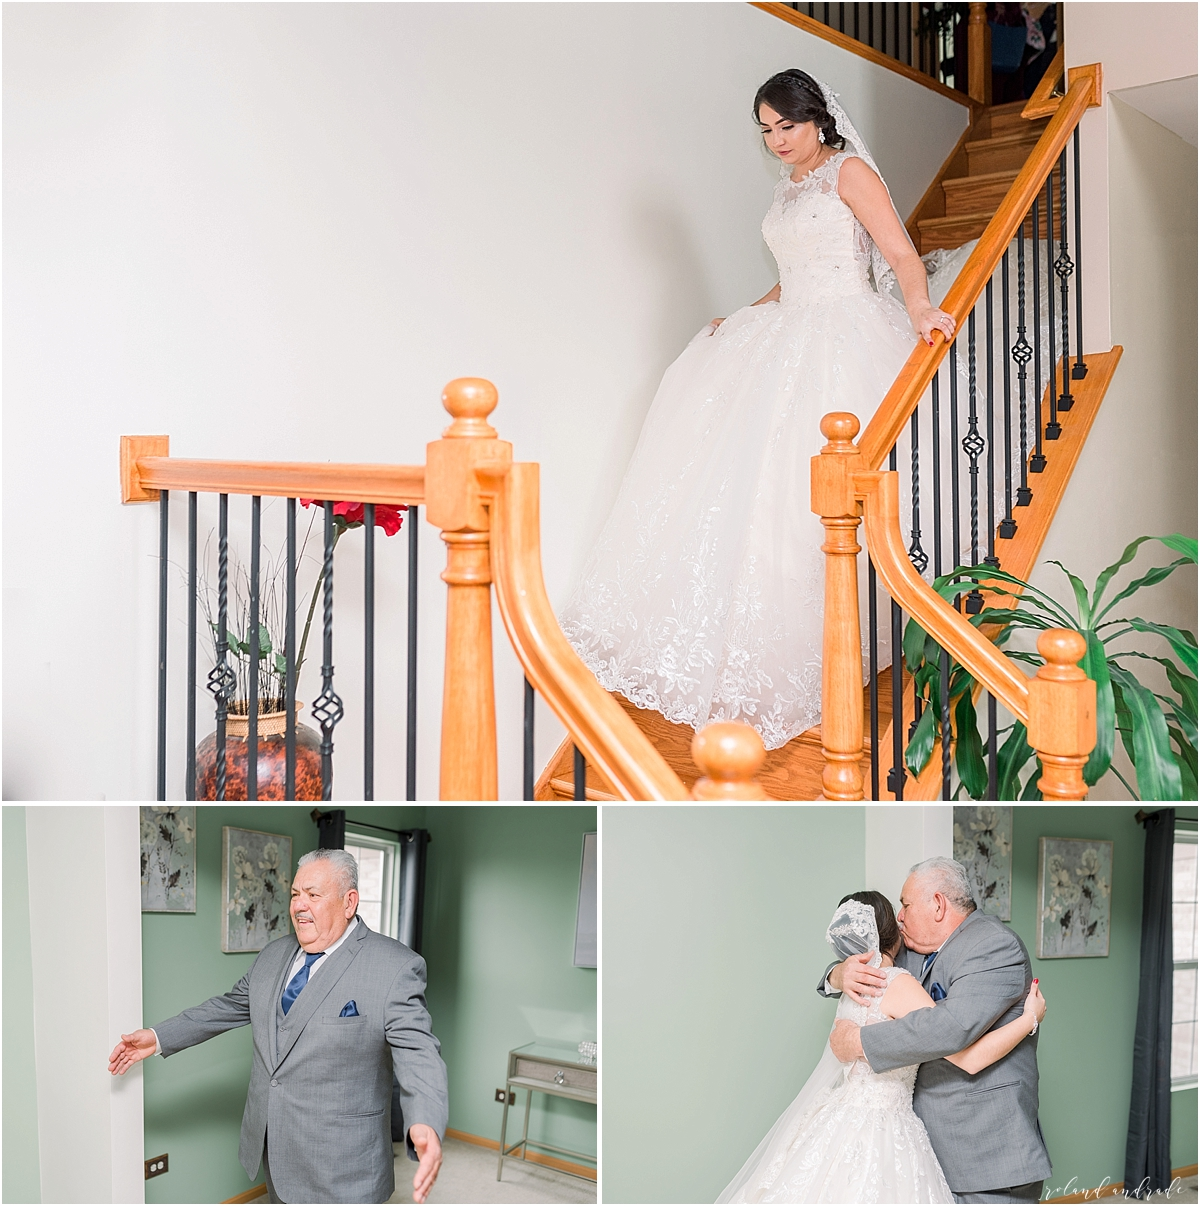 Alpine Banquets Wedding, Chicago Wedding Photographer, Naperville Wedding Photographer, Best Photographer In Aurora, Best Photographer In Chicago_0023.jpg